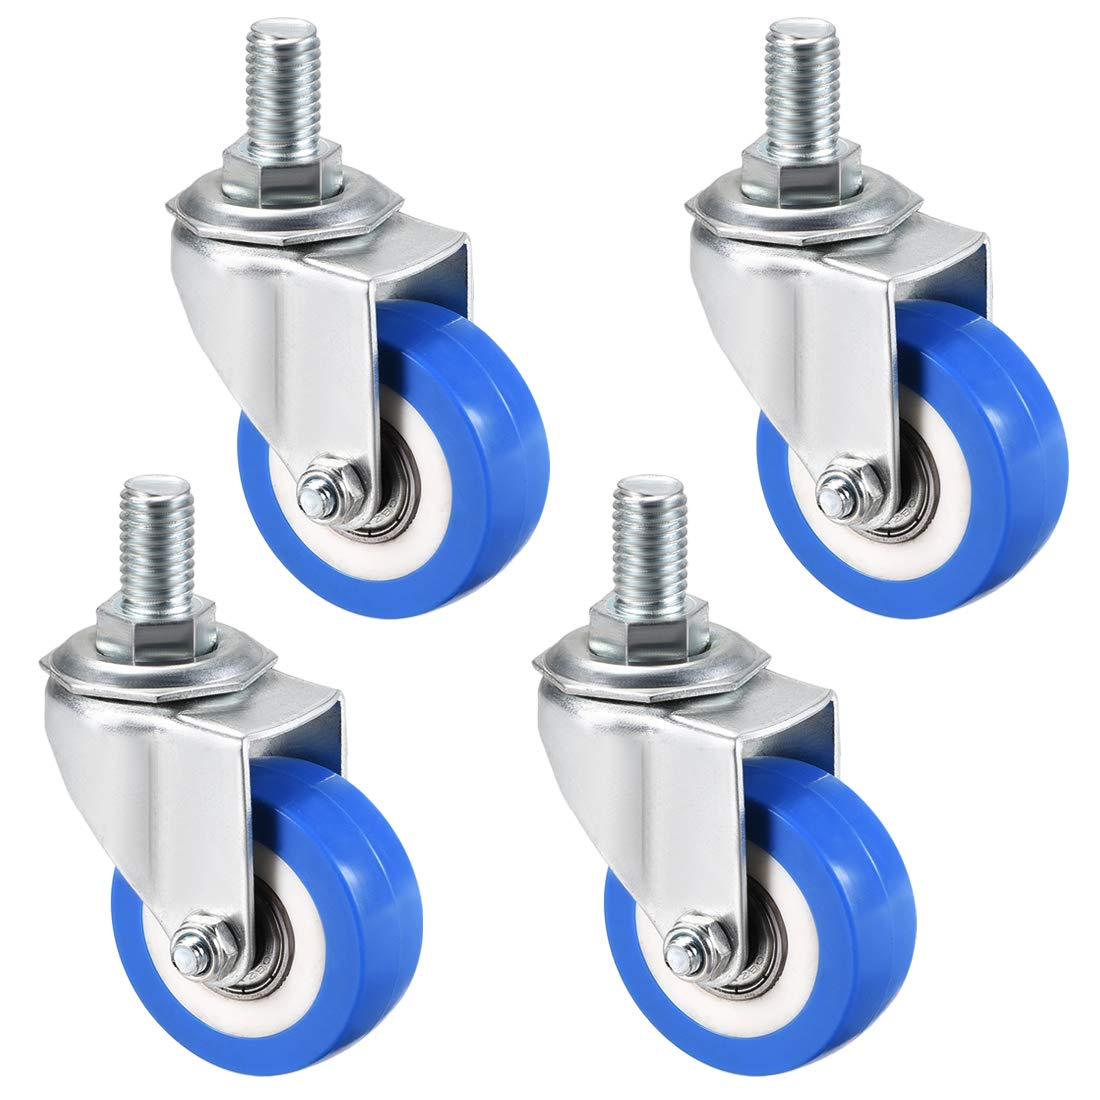 uxcell Swivel Caster Wheels PU Caster 2 Inch Dia Blue Wheel M12 x 20mm Threaded Stem 132lb Capacity, 4pcs